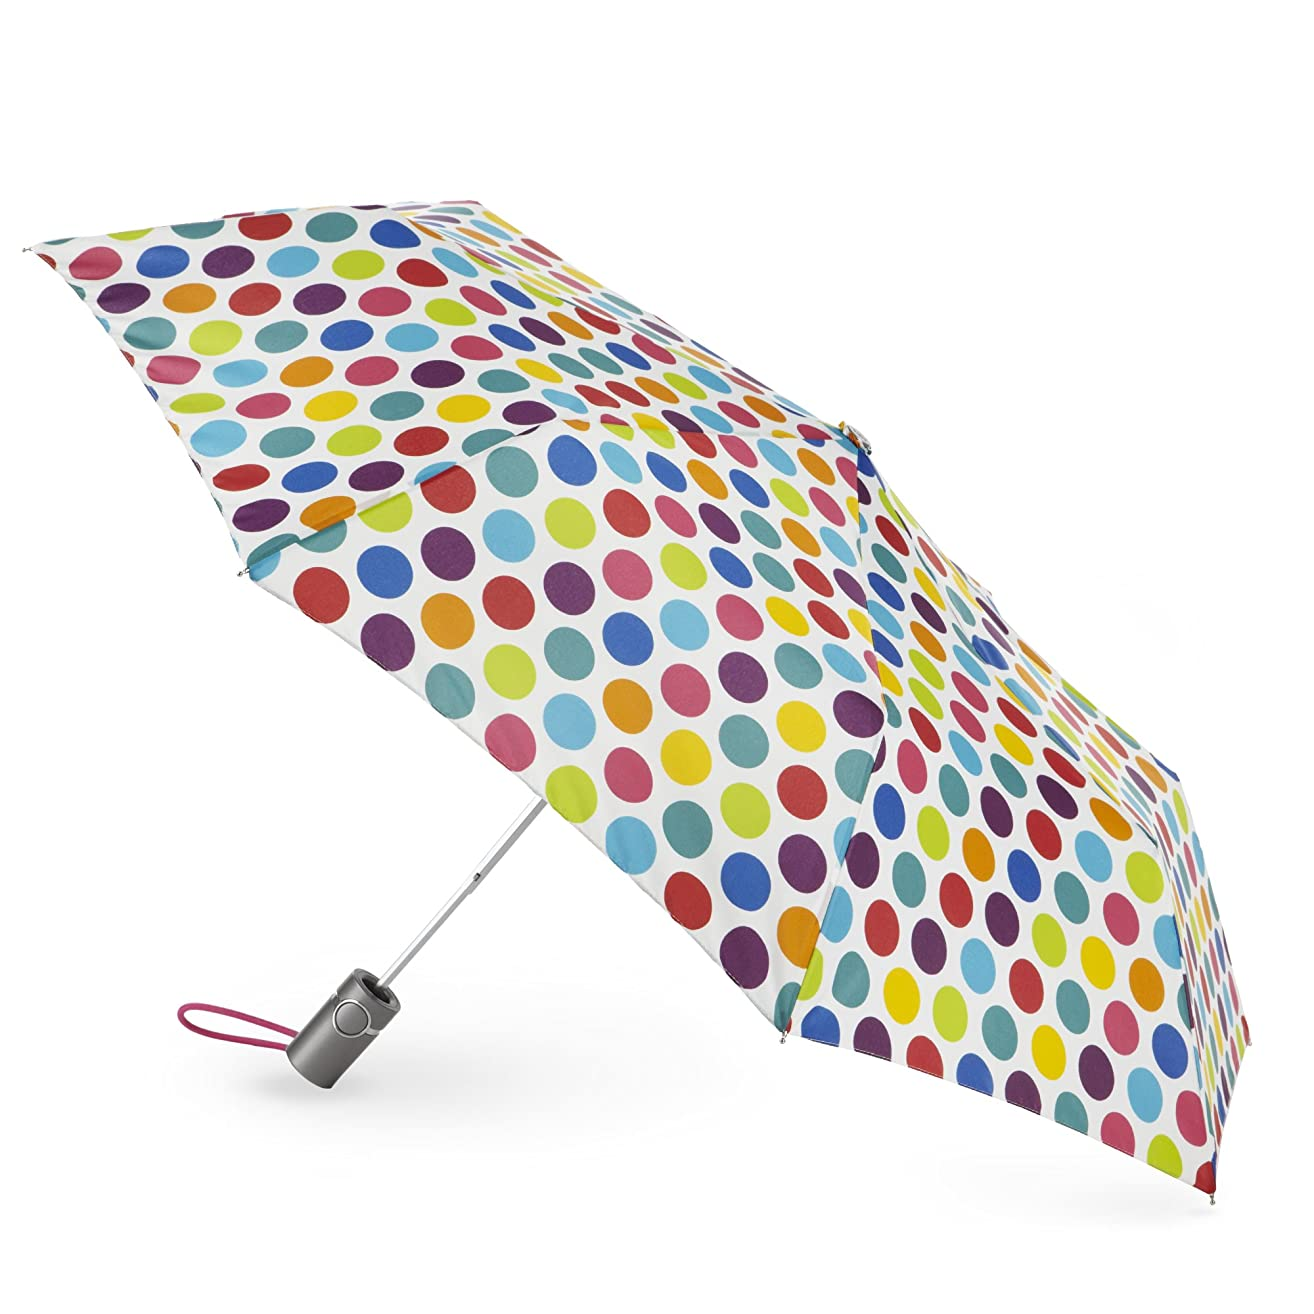 Totes Classics  3 Section Automatic Compact Umbrella, Big Rainbow Dot, One Size